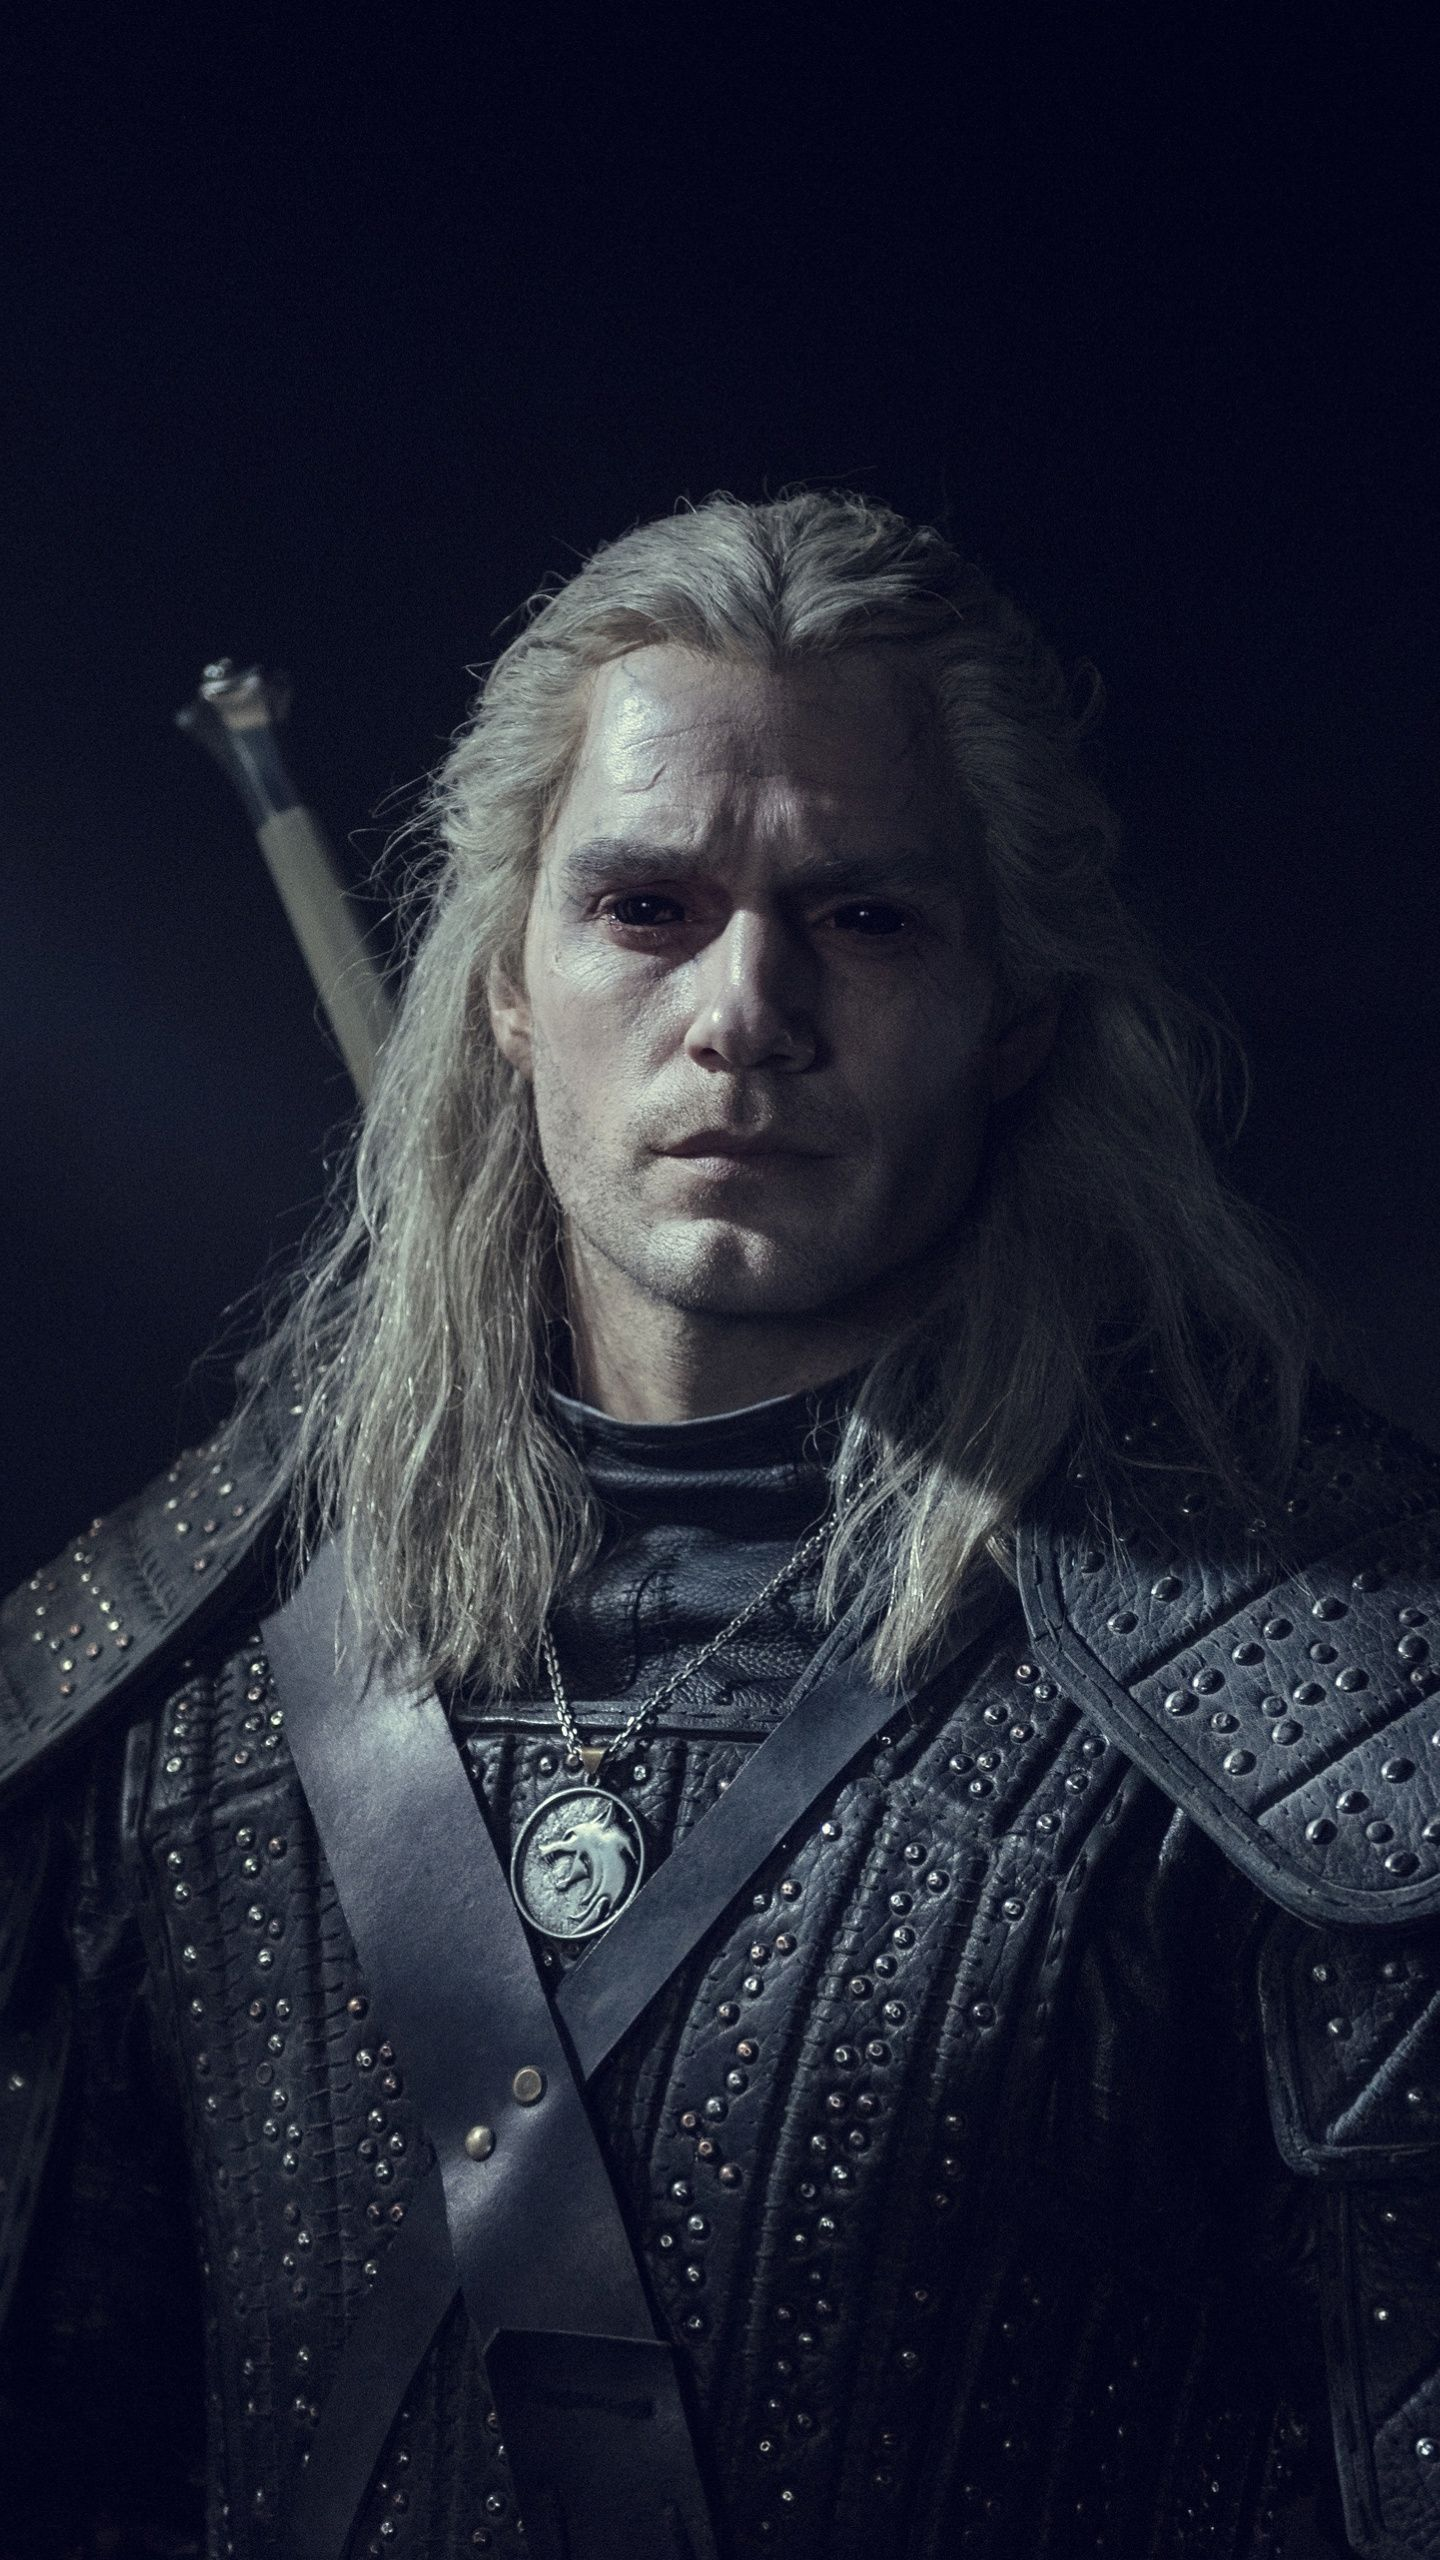 14402560 The Witcher Geralt Of Rivia Henry Cavill Tv Show 2020 Wallpaper Full Hd 4k In 2020 The Witcher Geralt Geralt Of Rivia The Witcher